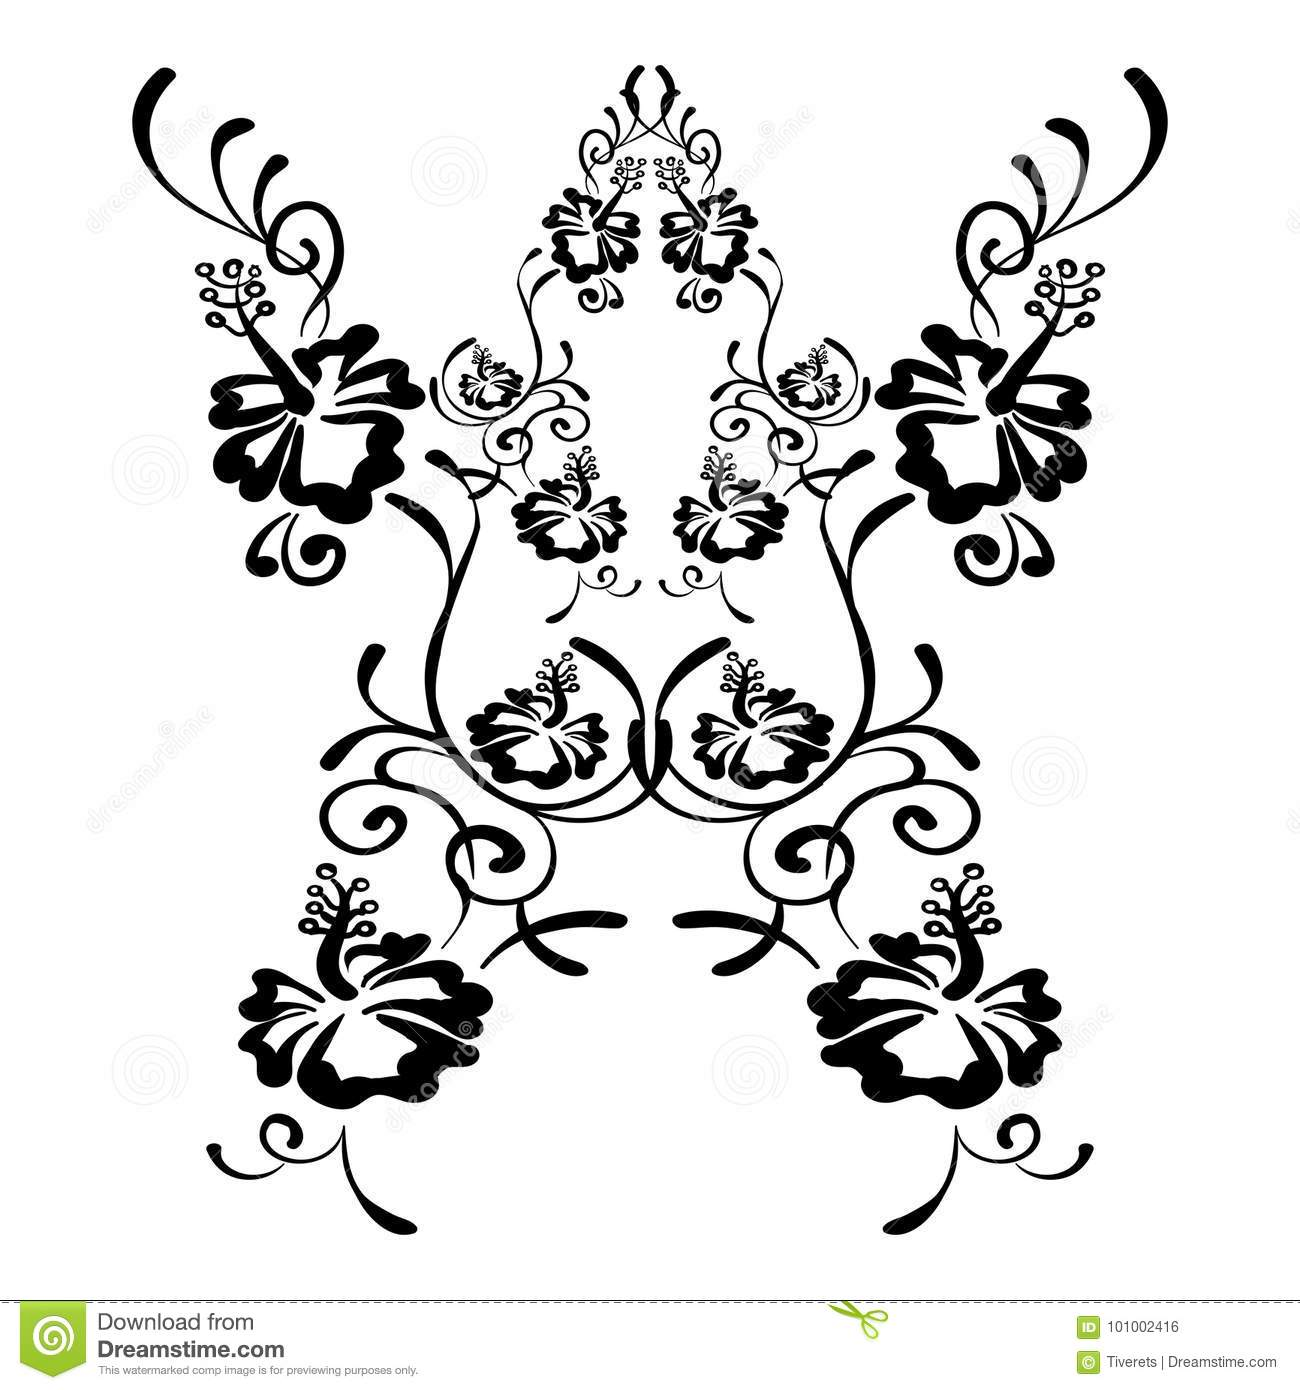 Hibiscus Flowers Drawing And Sketch With Line Art Stock Vector